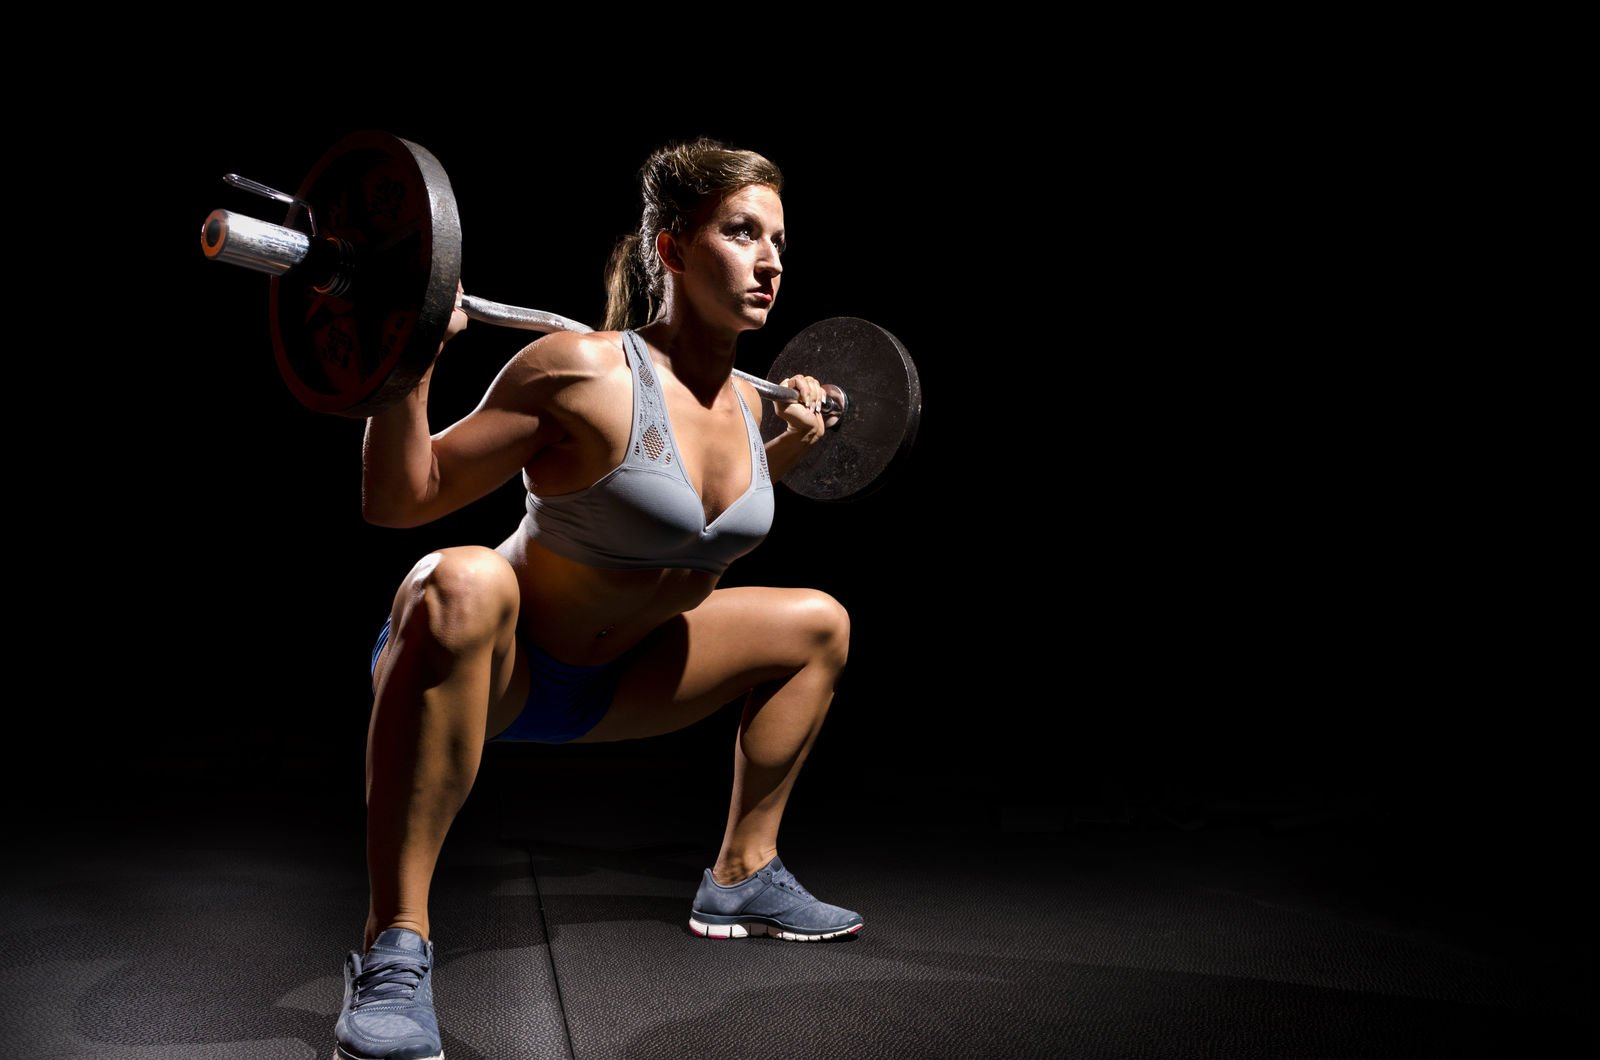 How much weight can you gain from strength training?